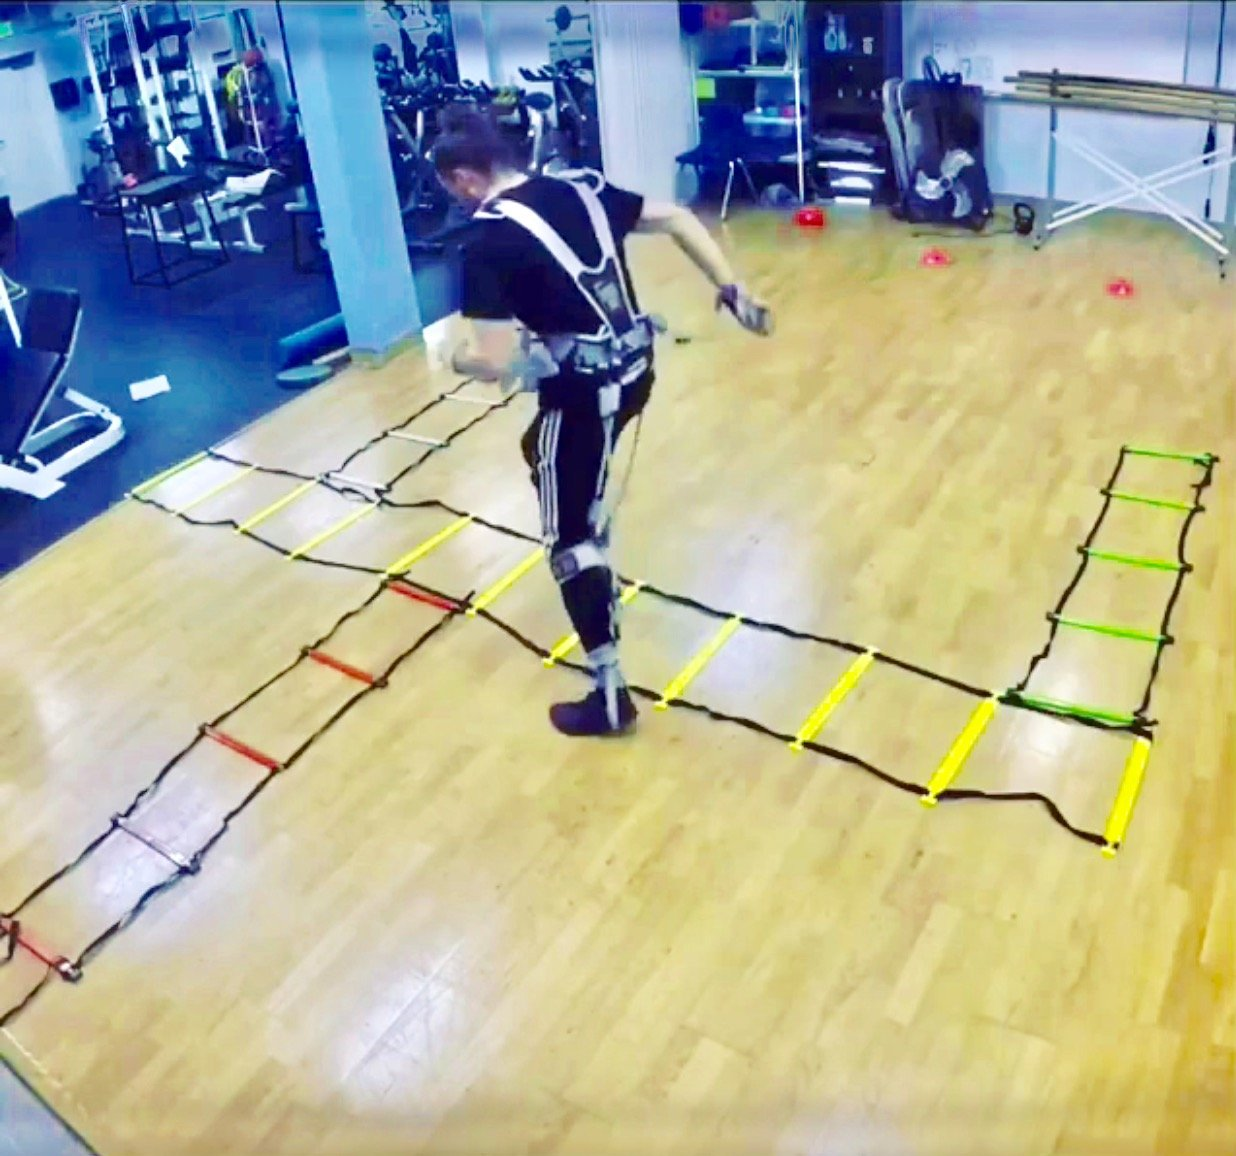 MASS Suit Speed Series by Juke Performance - Professional grade athletic speed training system - Full body resistance exercise equipment - Athletic sports system for football, basketball & Soccer. by MASS SUIT (Image #4)